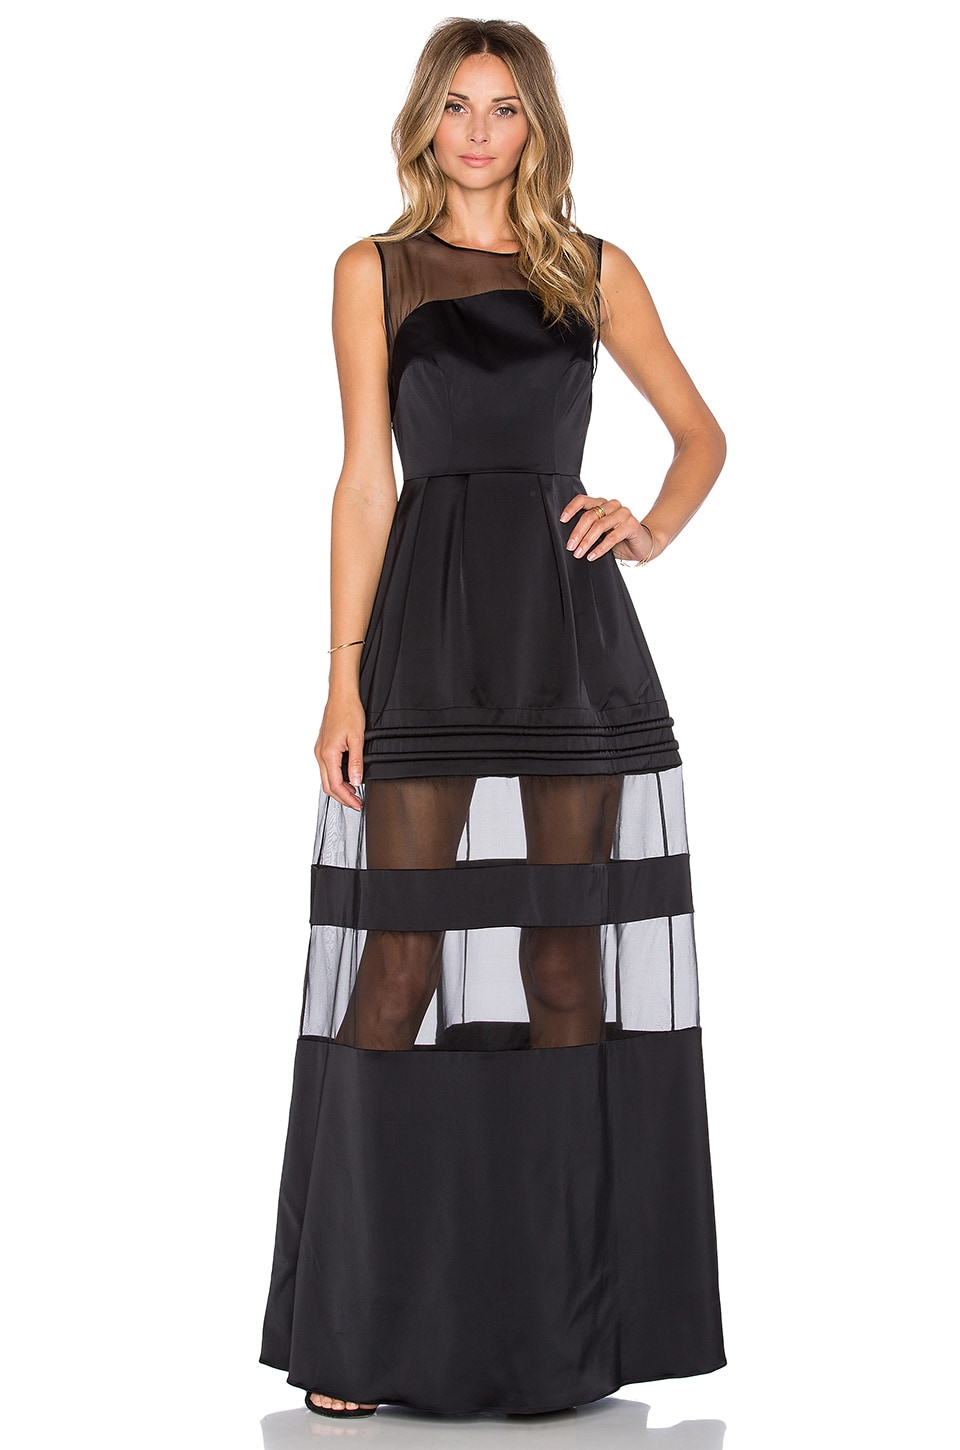 Alexis Andromeda Sheer Panel Gown in Black